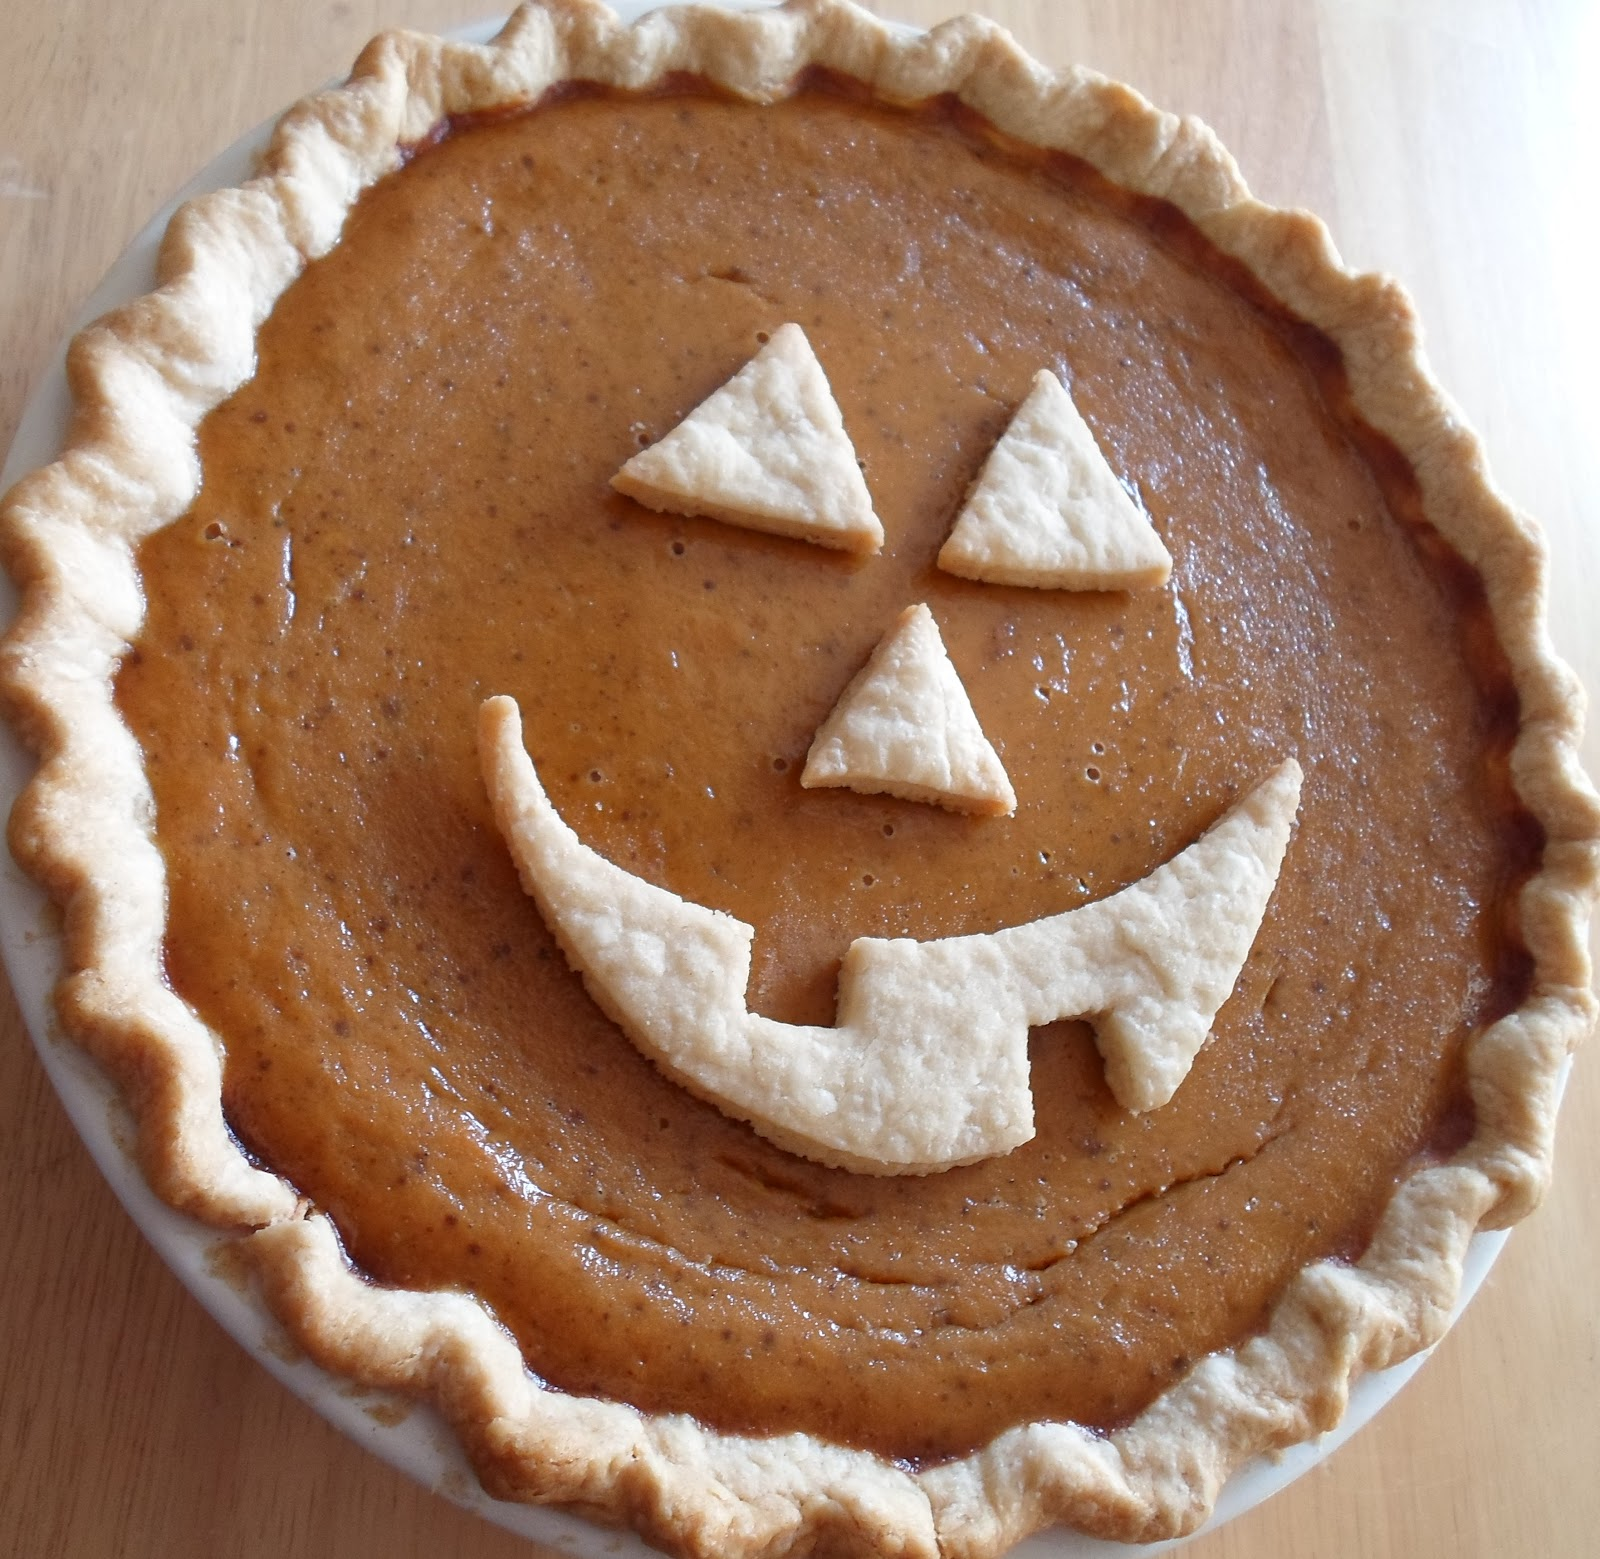 Happier Than A Pig In Mud: Jack-O-Lantern Pumpkin Pie